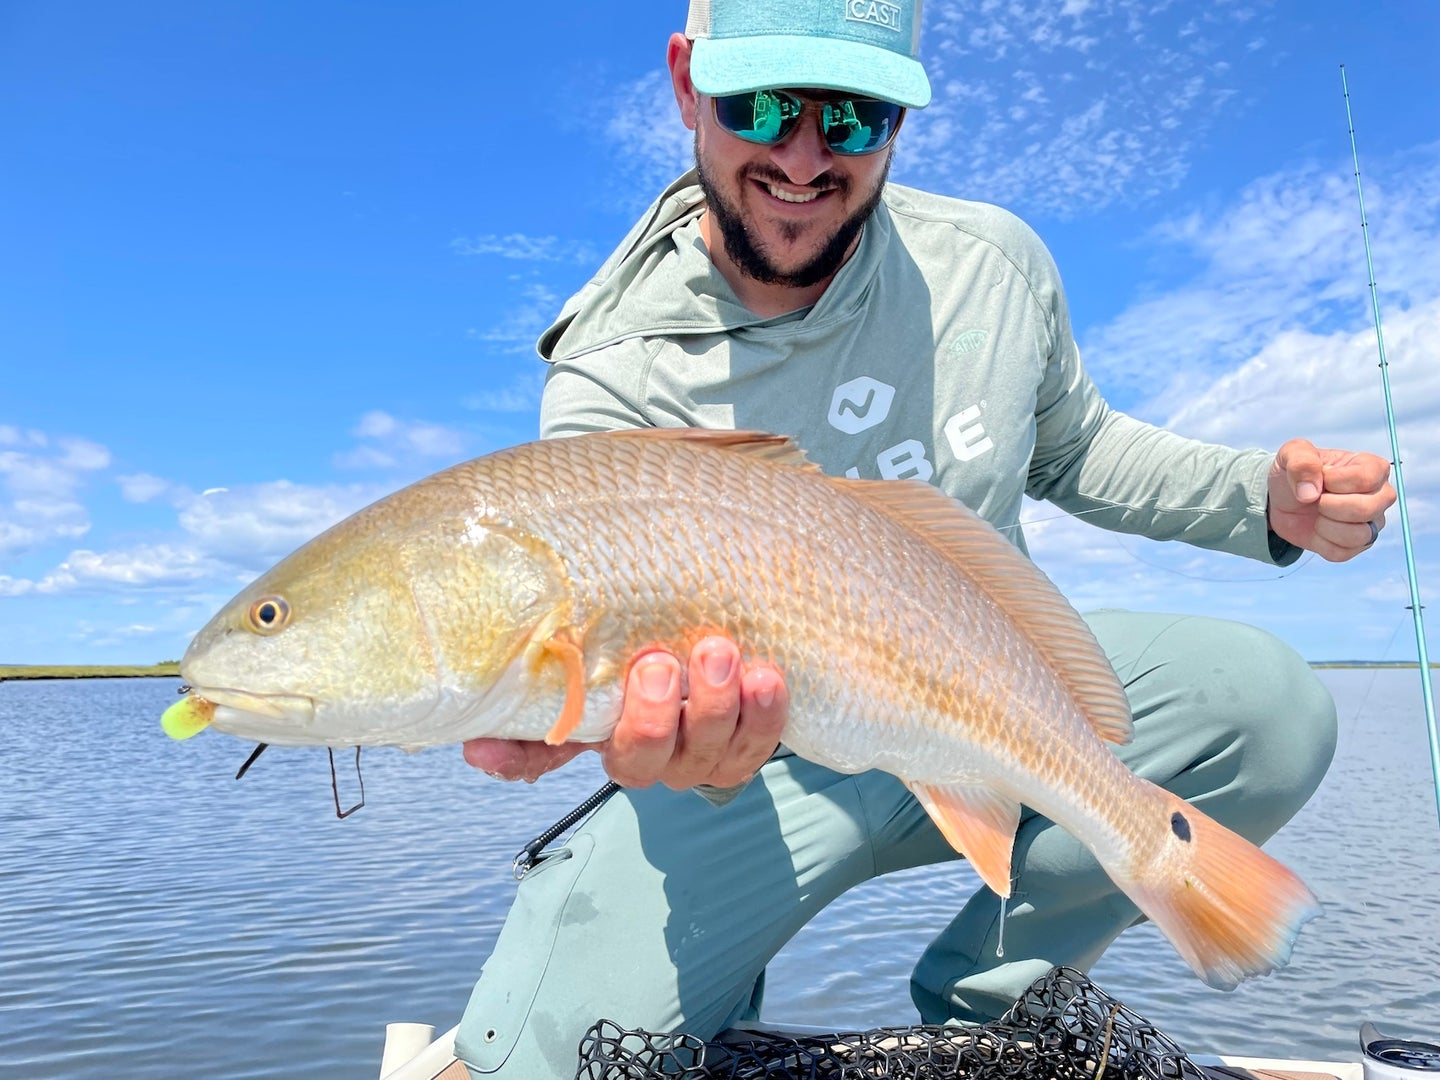 A man holding a redfish